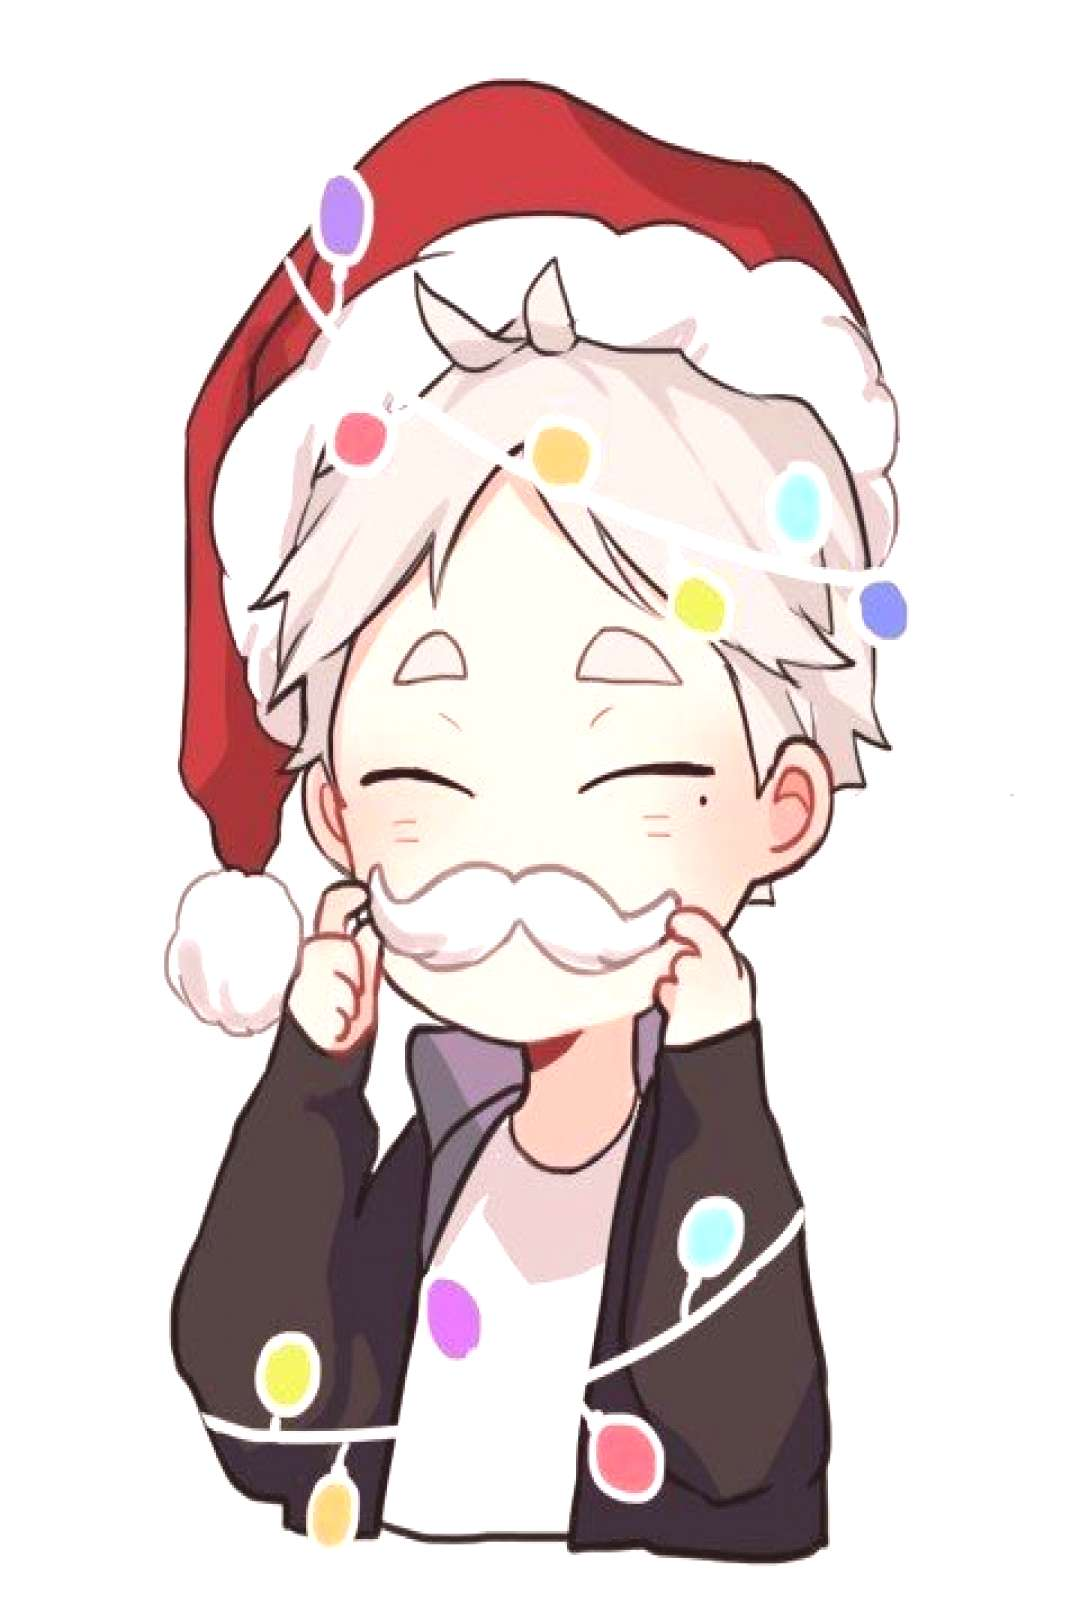 Haikyuu!! Love — haikyuubabee: ❄️❄️Merry Christmas!!! From one...  You are in the right p